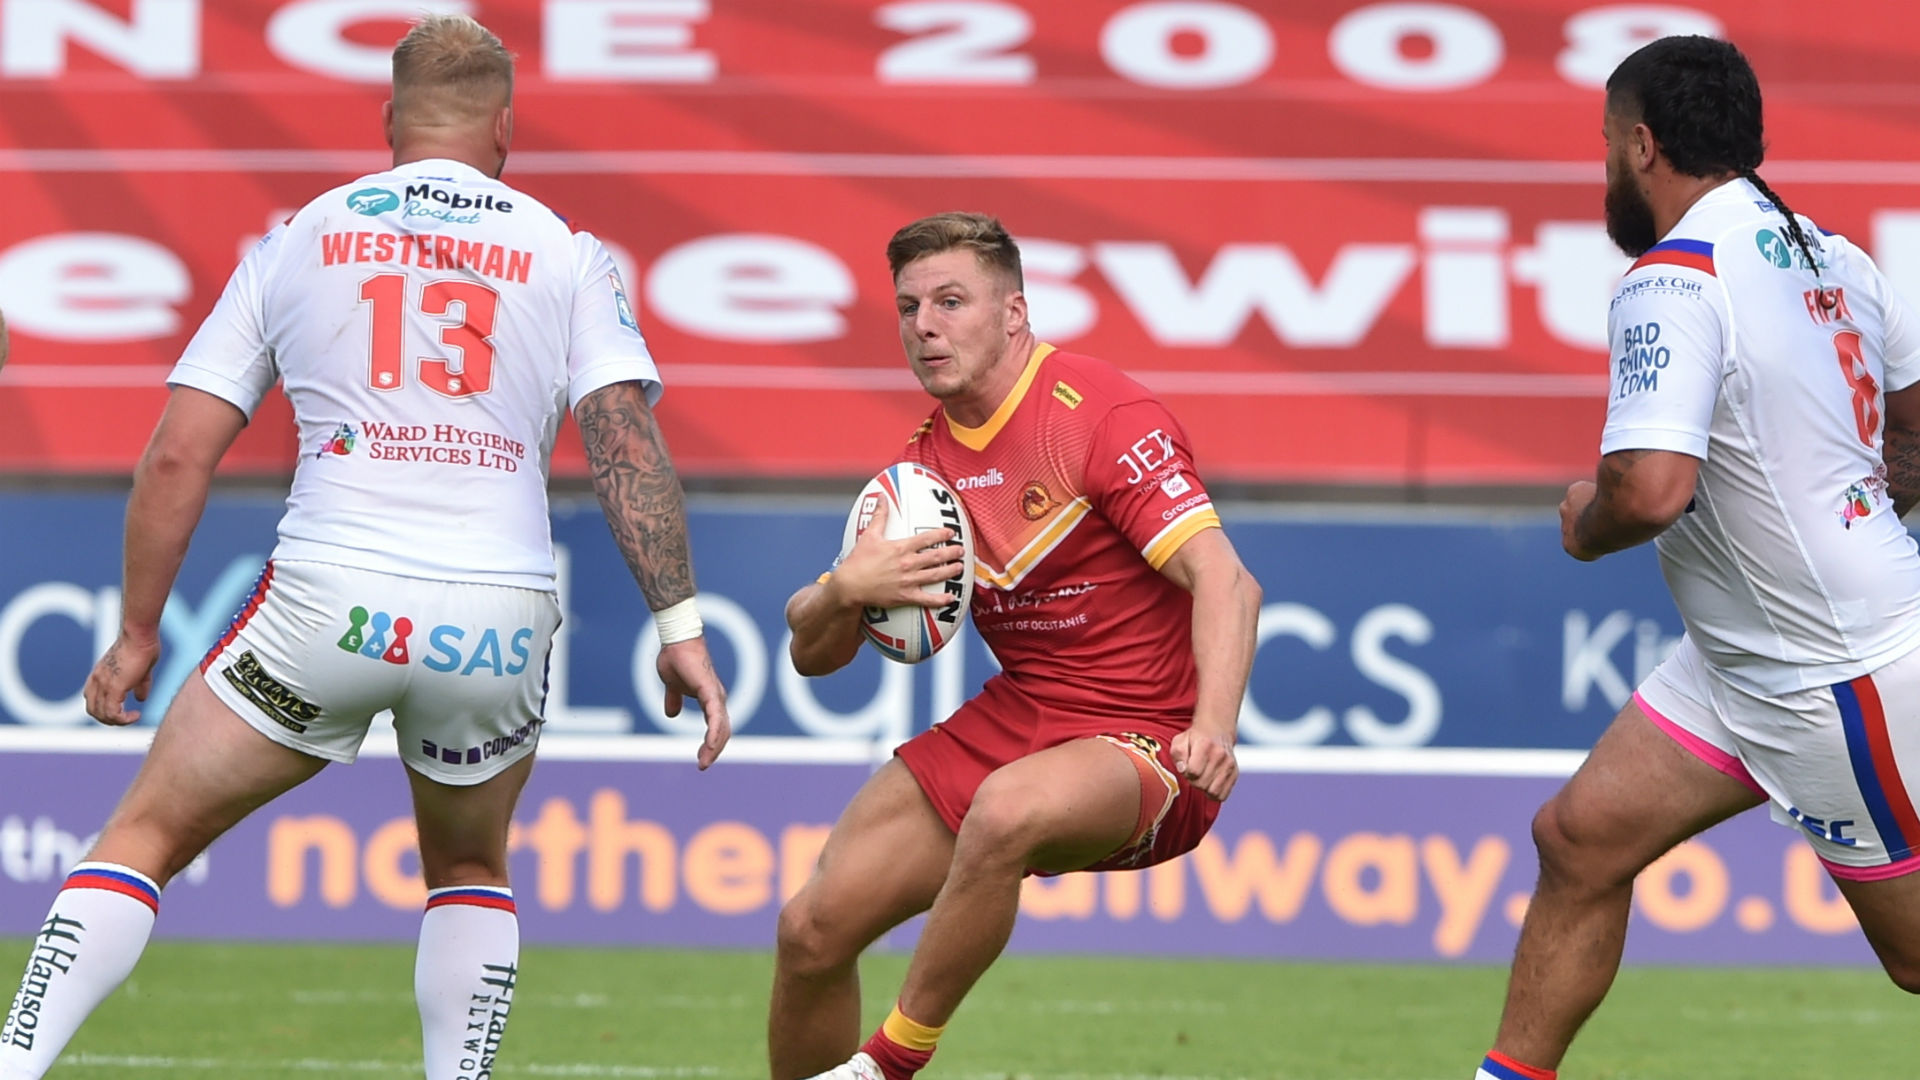 Davies and Whitley hat-tricks see Dragons batter Wakefield in 10-try rout